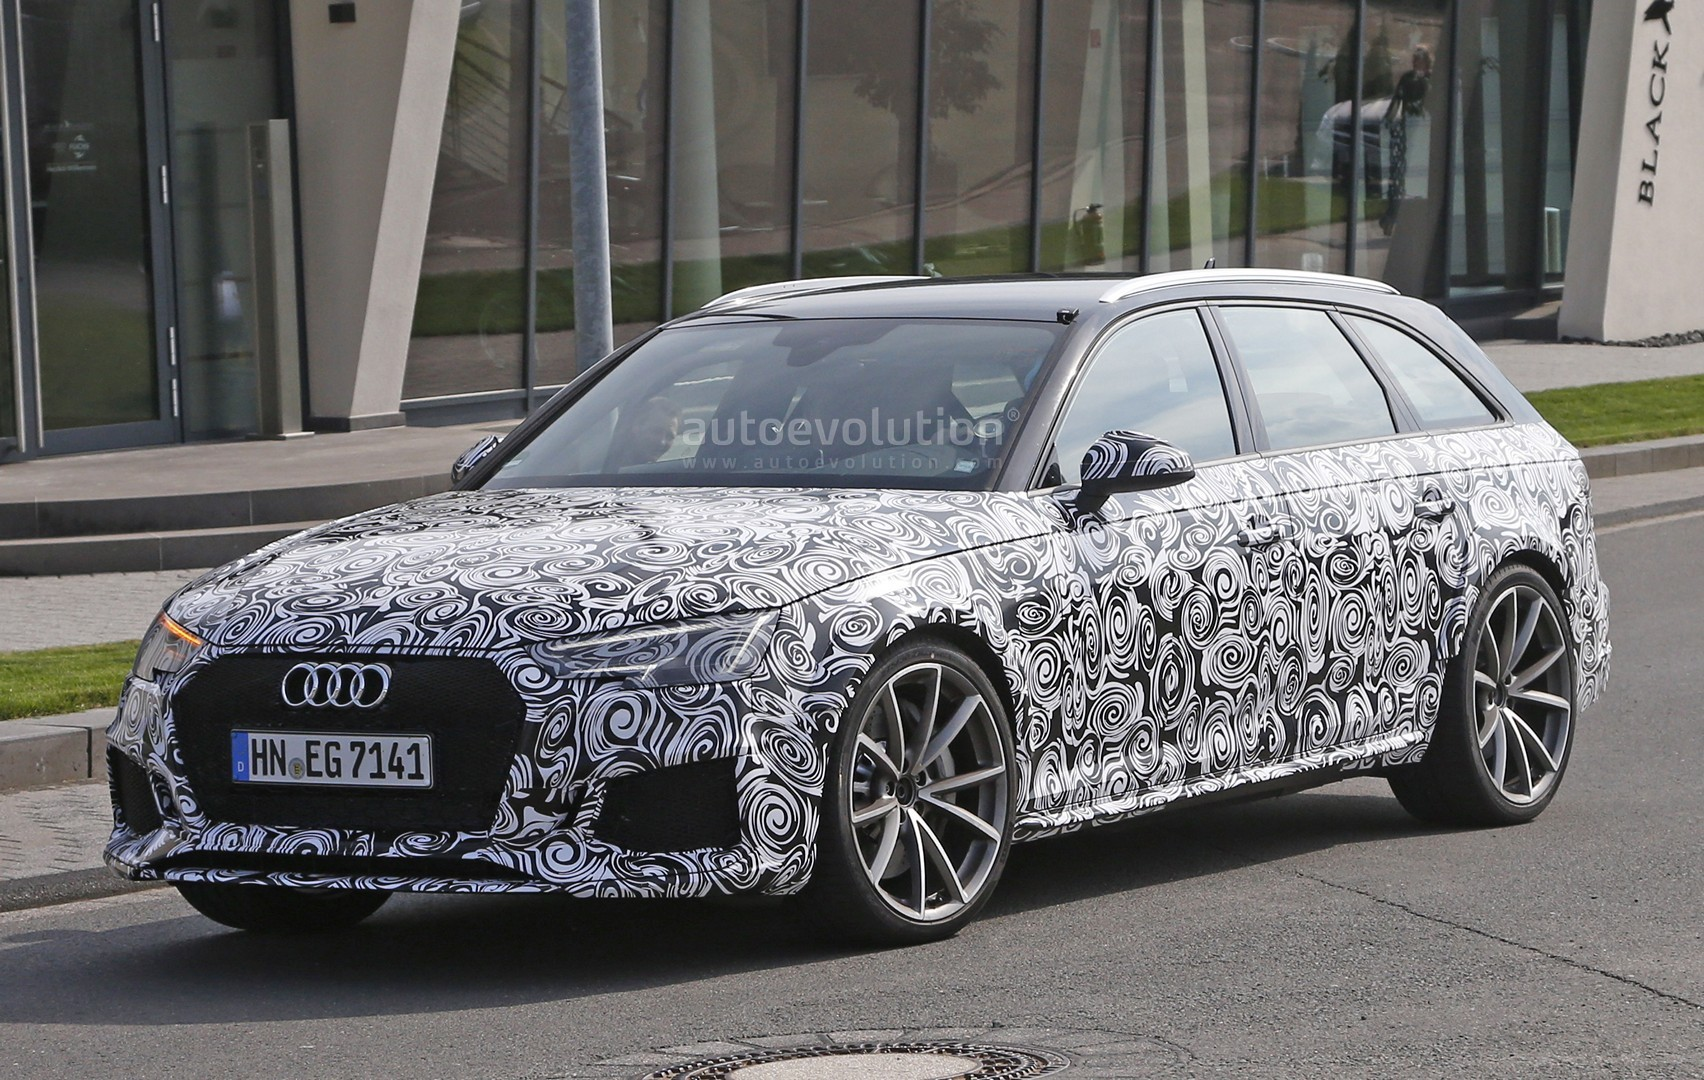 2015 Audi Q5 >> Spyshots: 2018 Audi RS4 Avant Prototype Looks Very Muscular - autoevolution